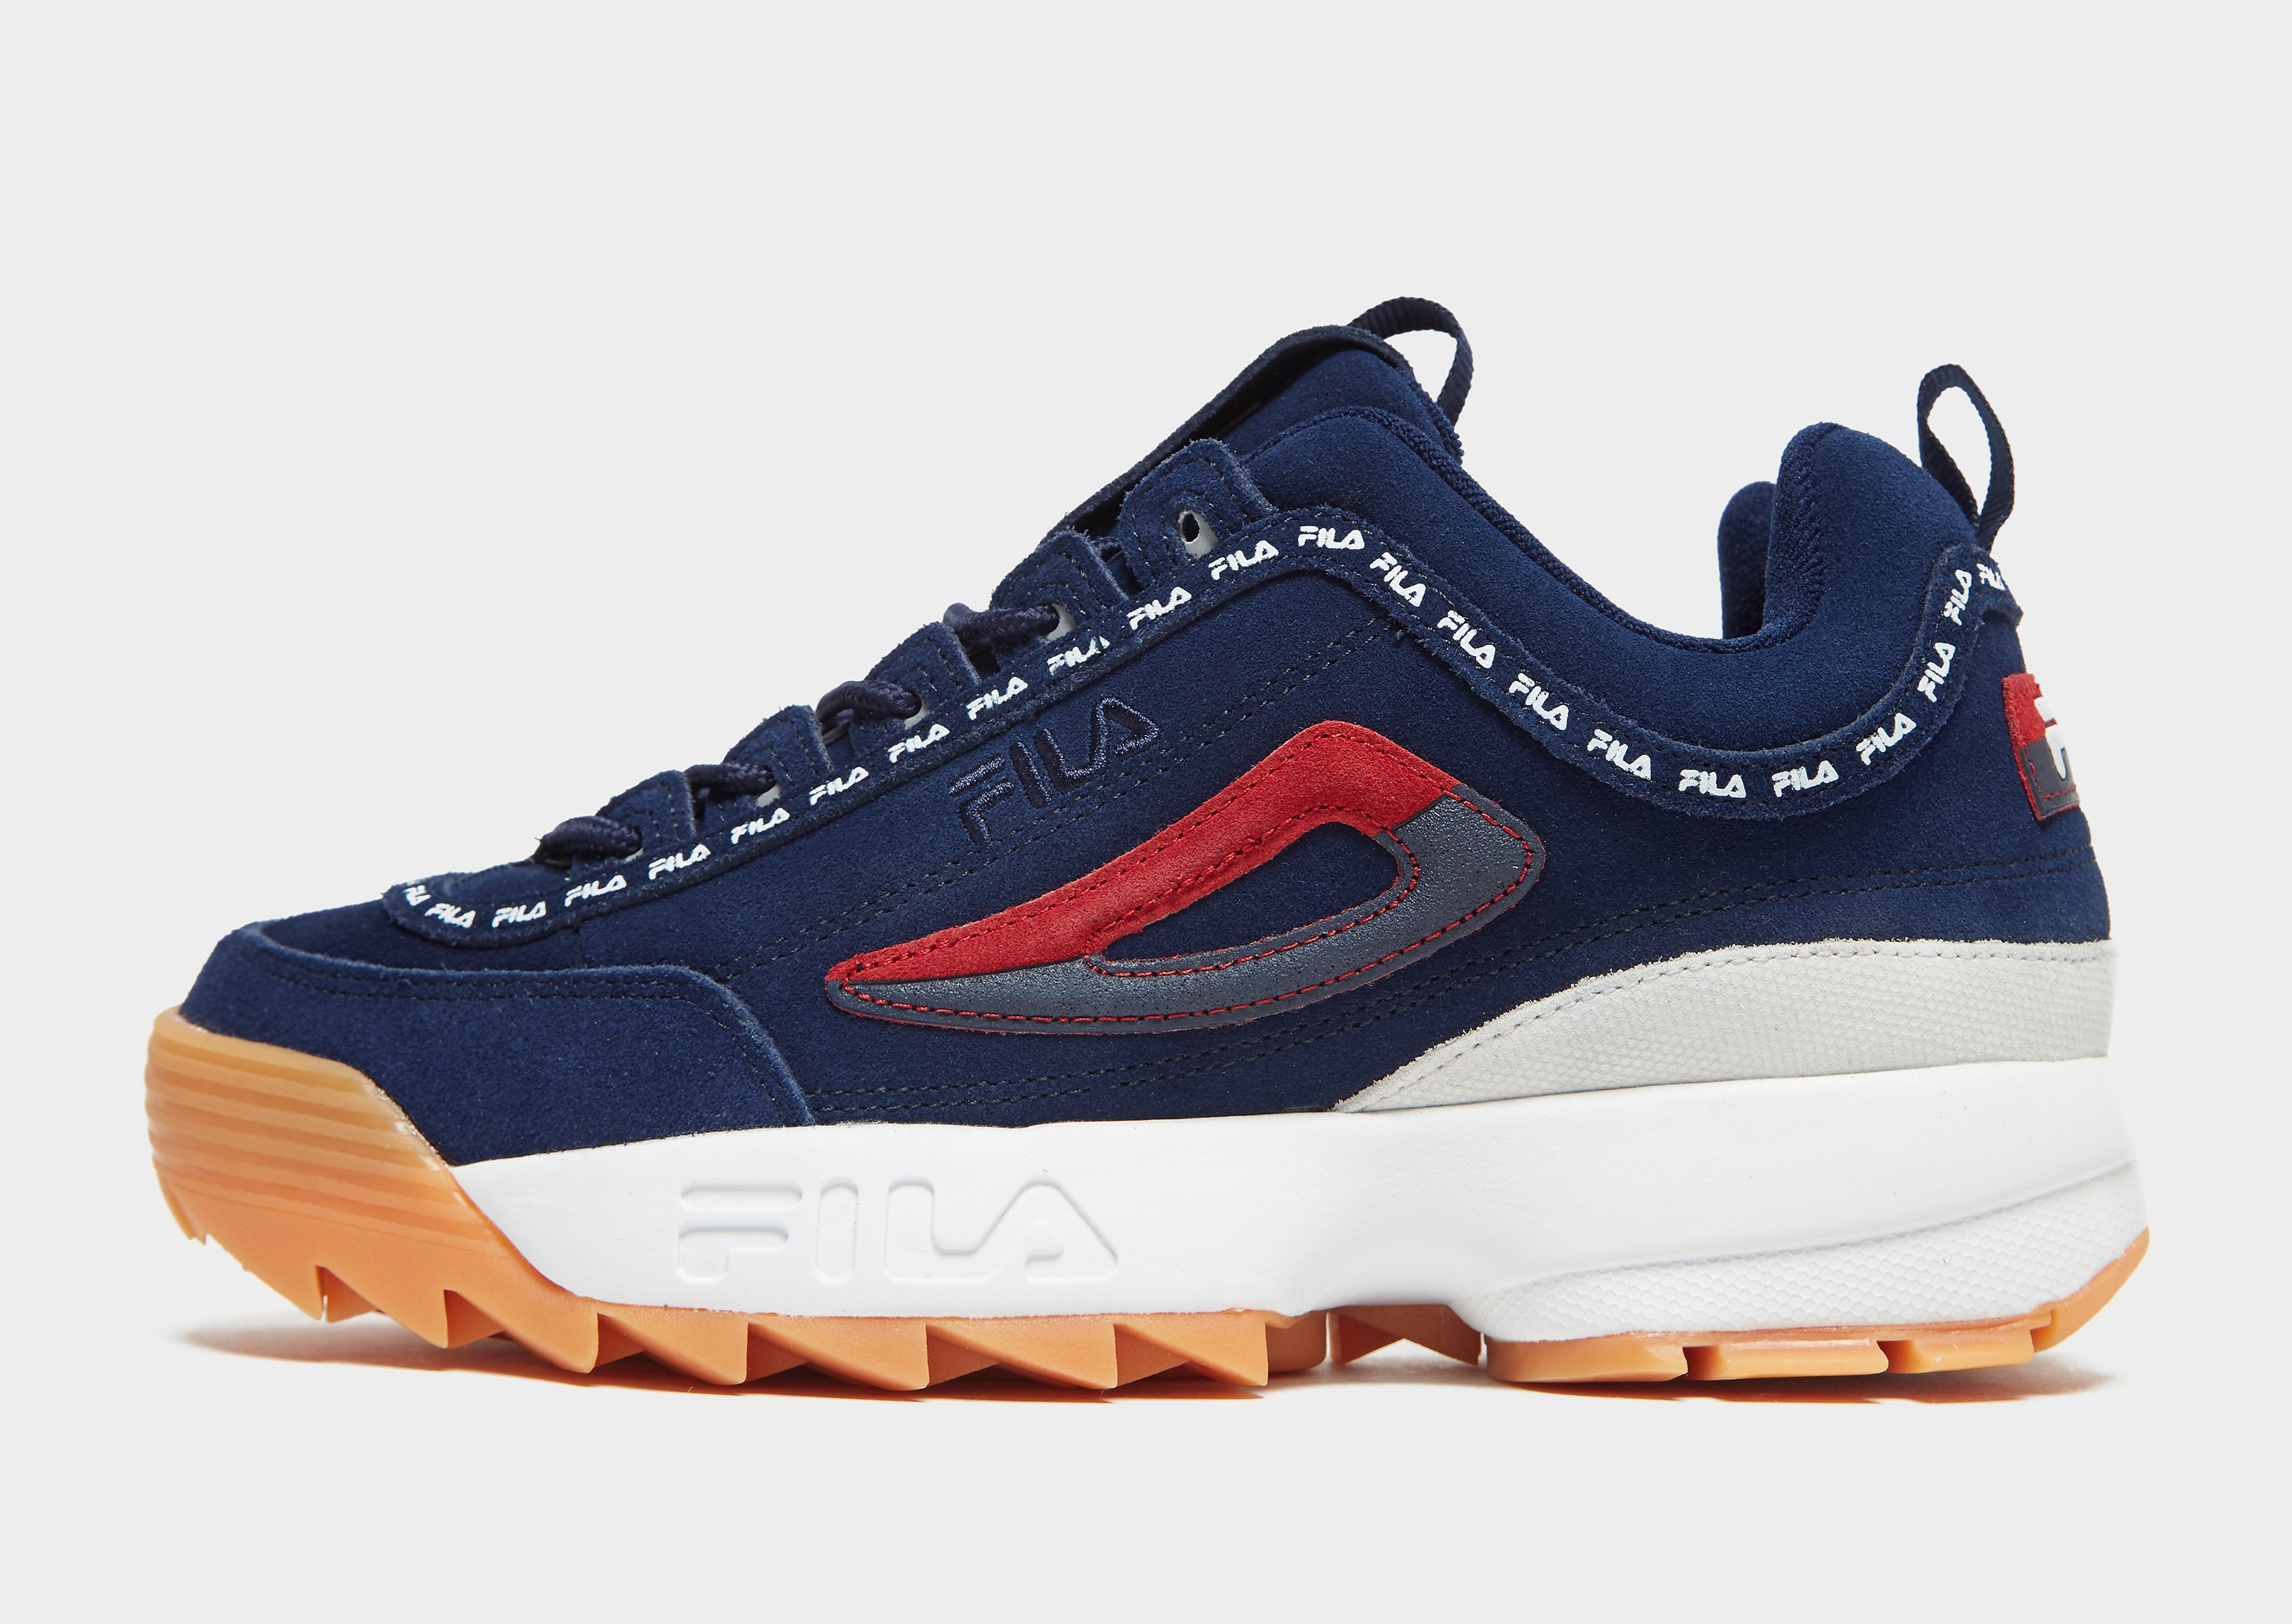 Sneaker Fila Fila Disruptor II Repeat - Only at JD